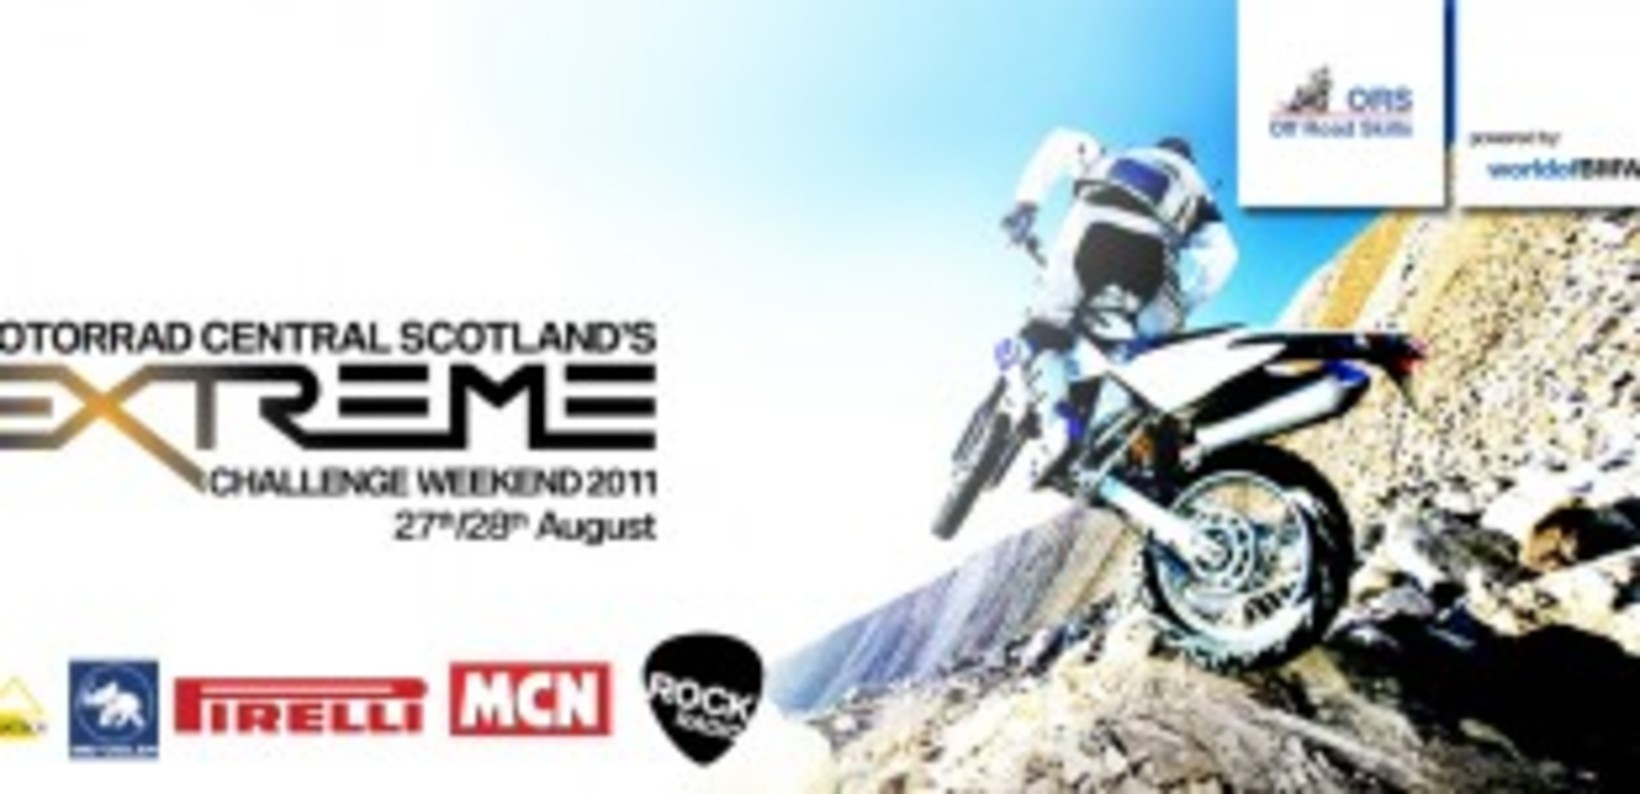 Off Road Skills to be a part of Motorrad Central Extreme Weekend.